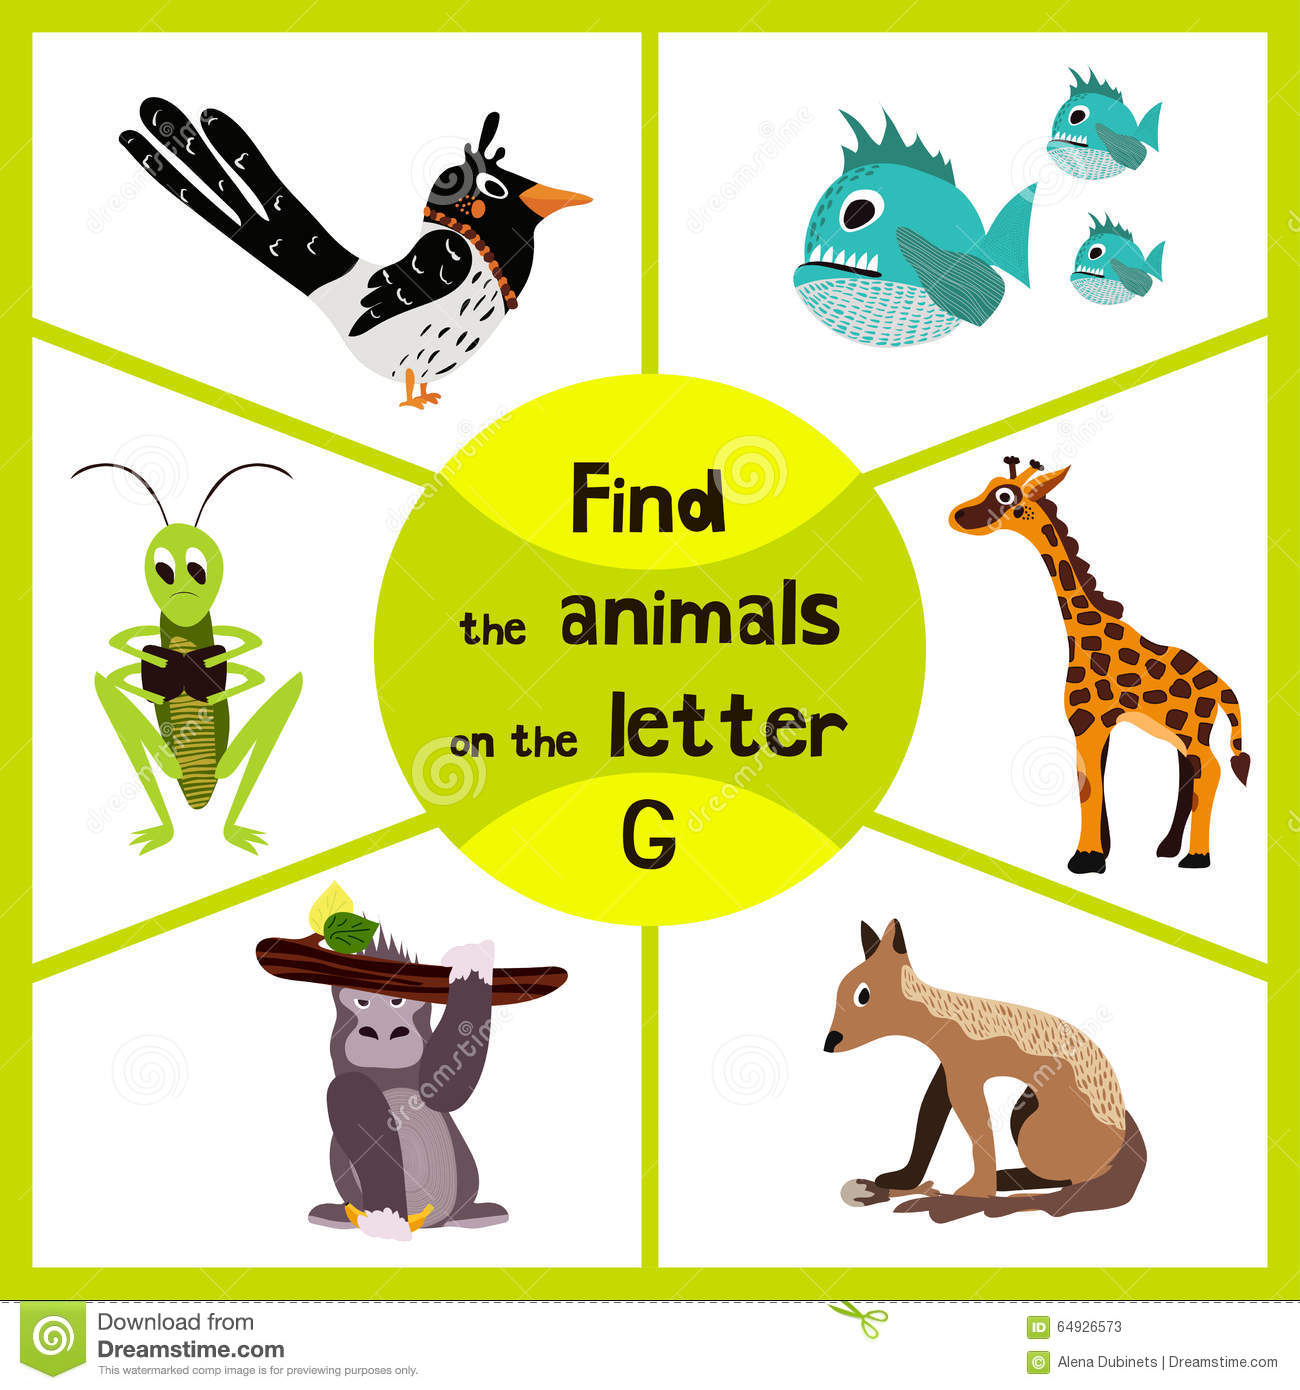 Worksheet Learning The Letter G worksheet learning the letter g mikyu free funny maze game find all 3 cute wild animals with